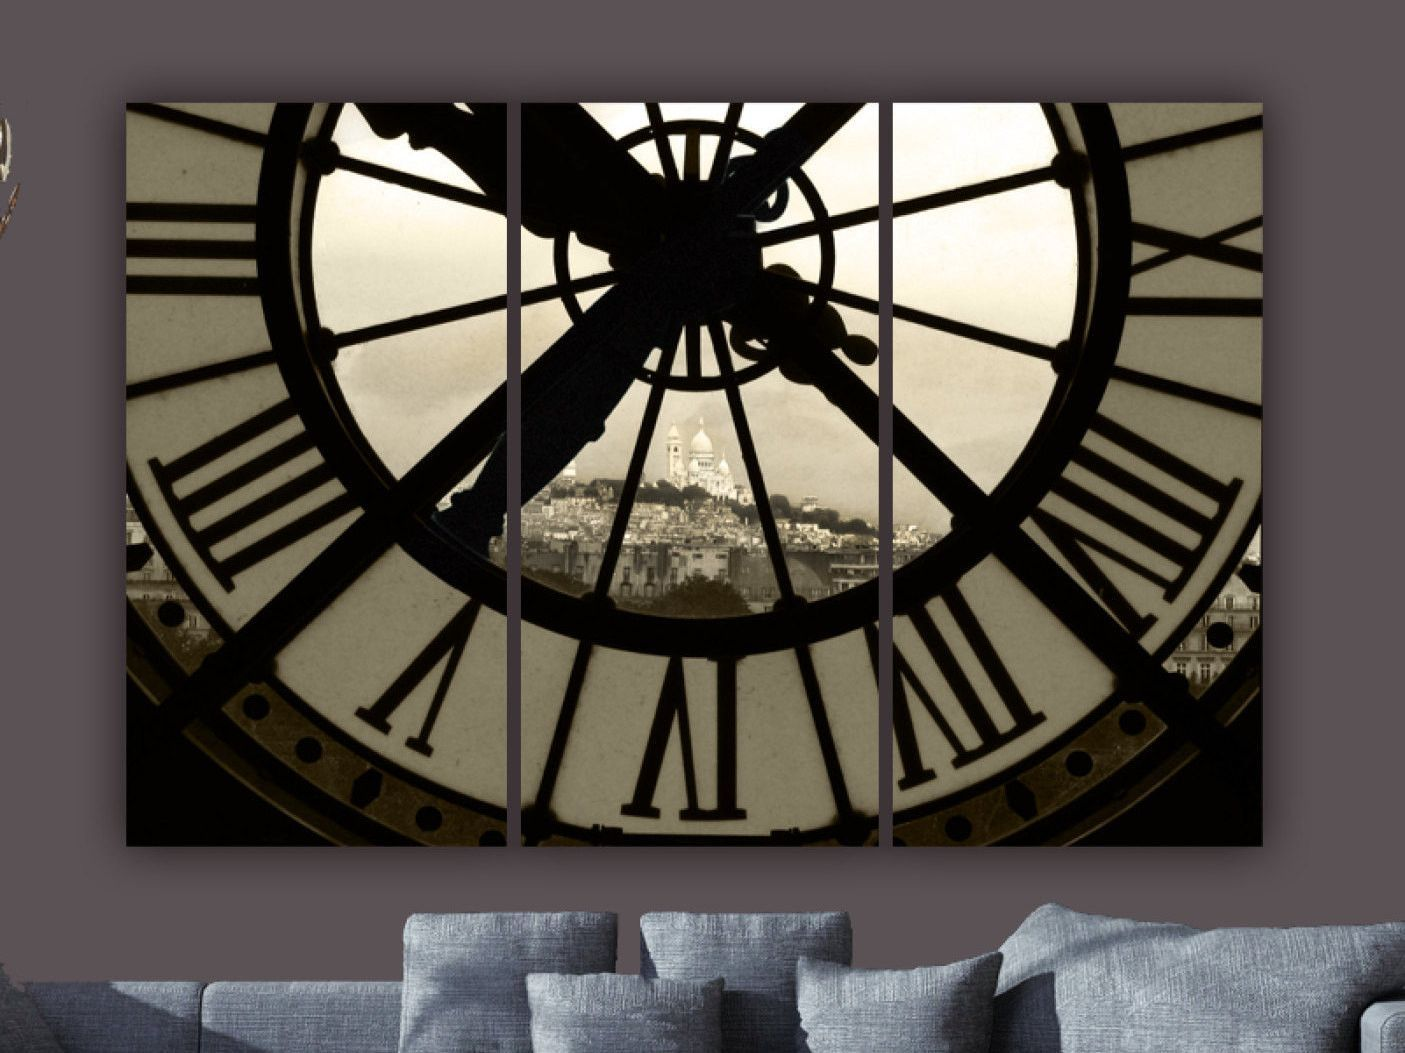 Paris D Orsay Museum Clock Canvas Art Stretched And Ready To Hang Is Professionally Hand Gallery Wred At My Holy Cow Studio